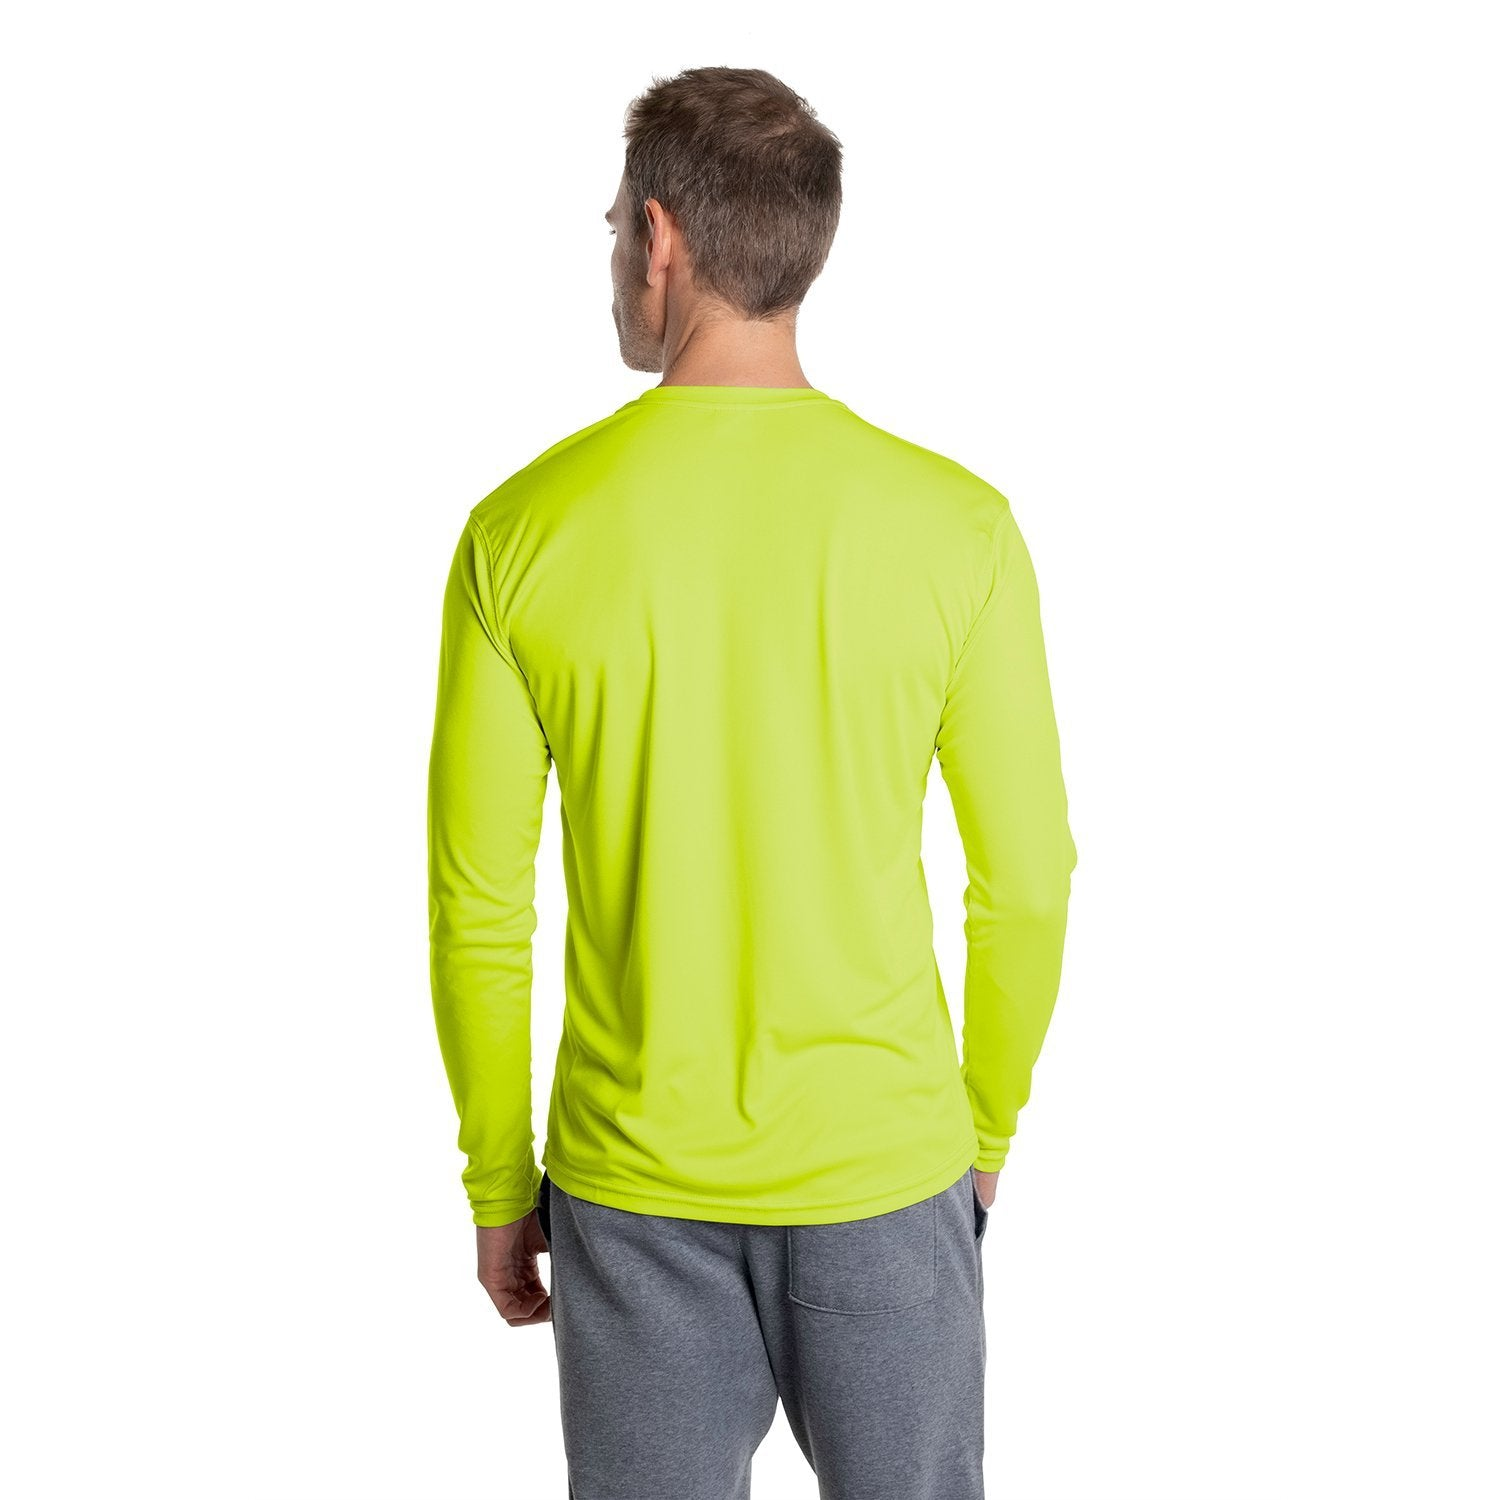 M700SY Solar Long Sleeve - Safety Yellow